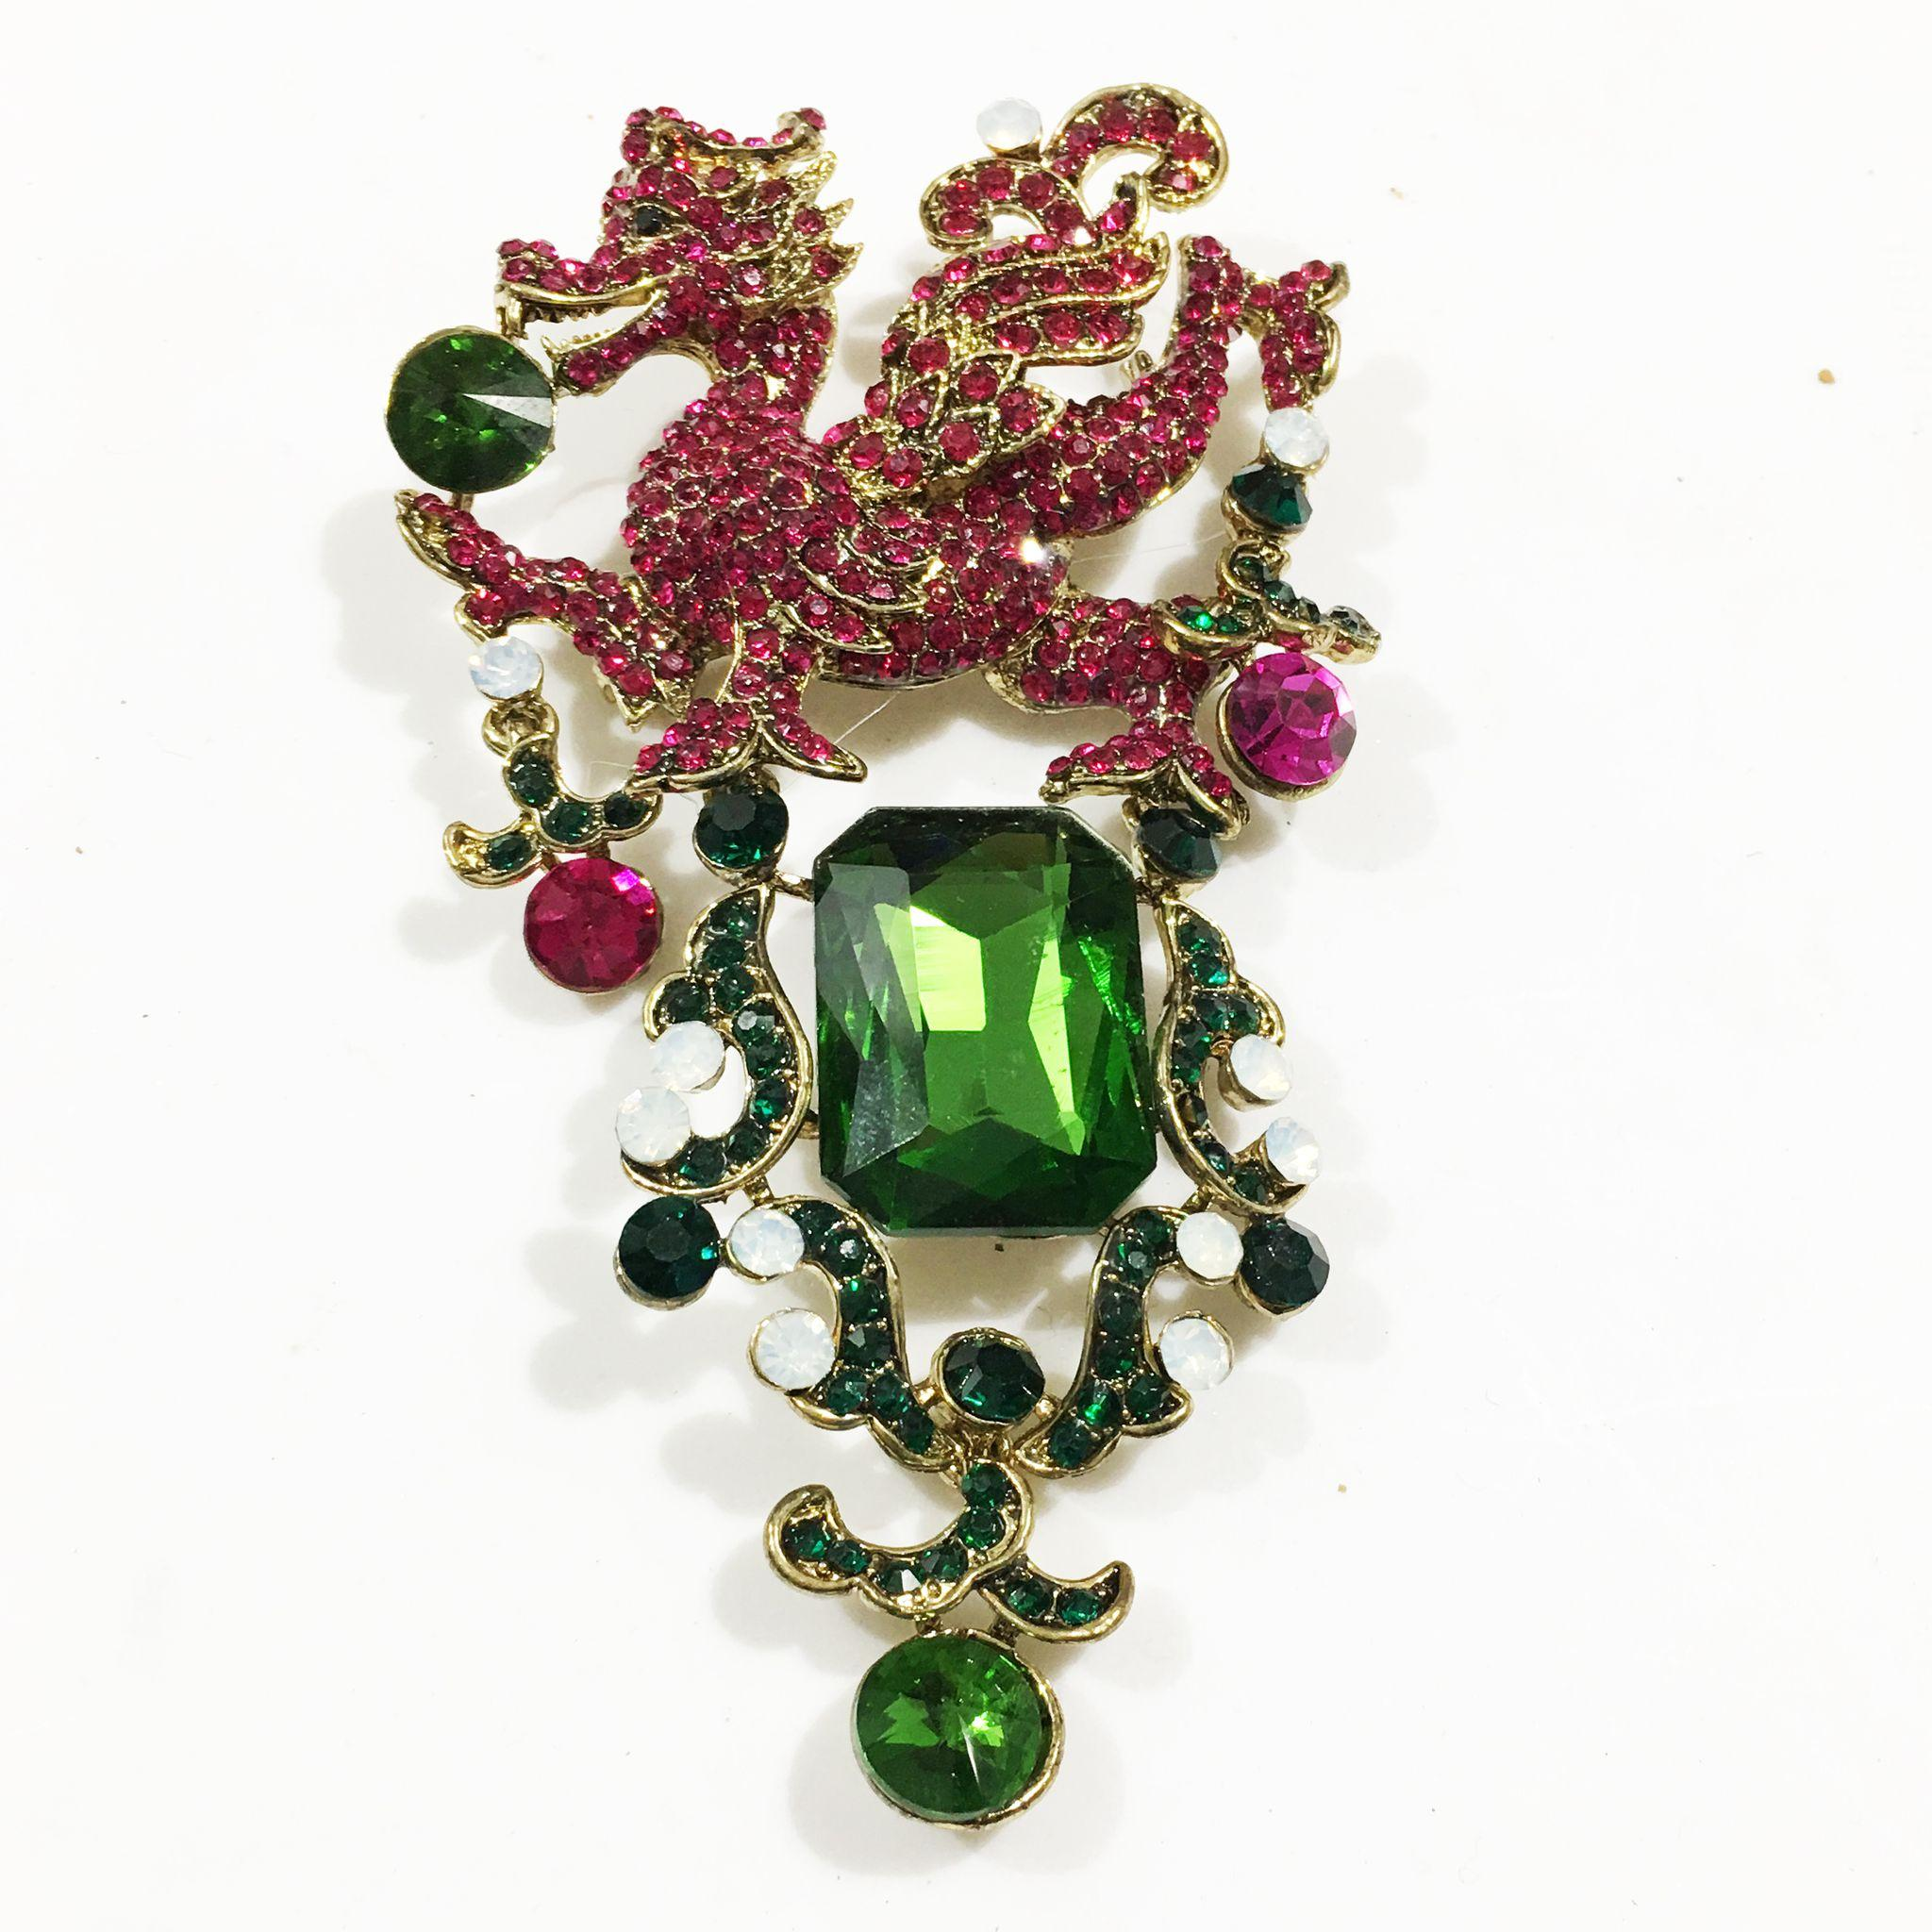 Raspberry and Emerald Giant Dragon Topped Brooch